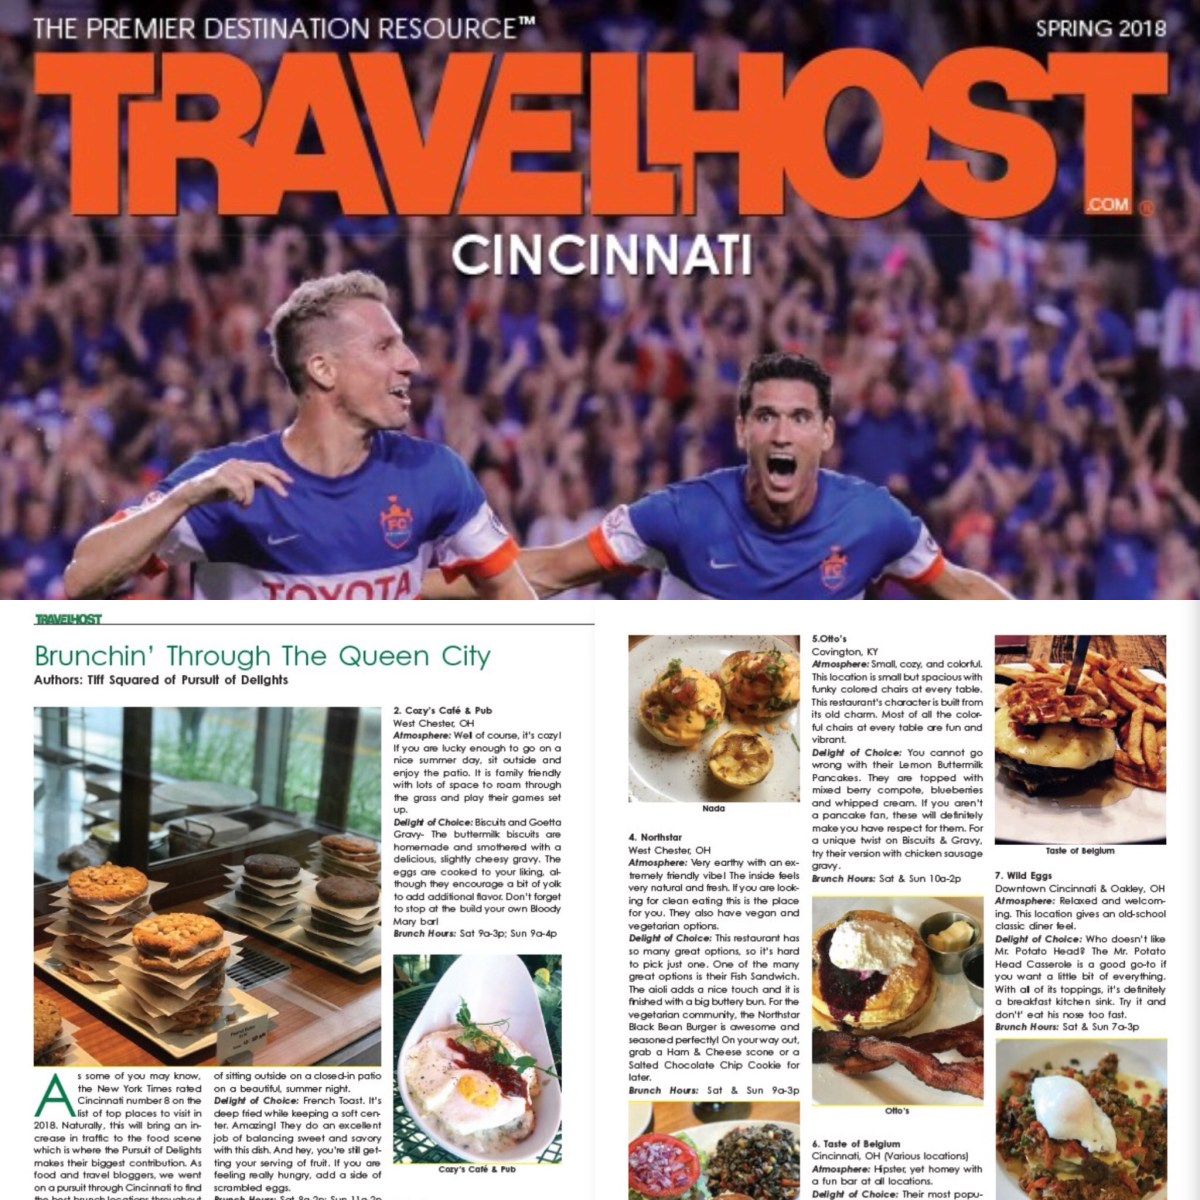 Brunchin' Through the Queen City- Our Feature in Travel Host Magazine!